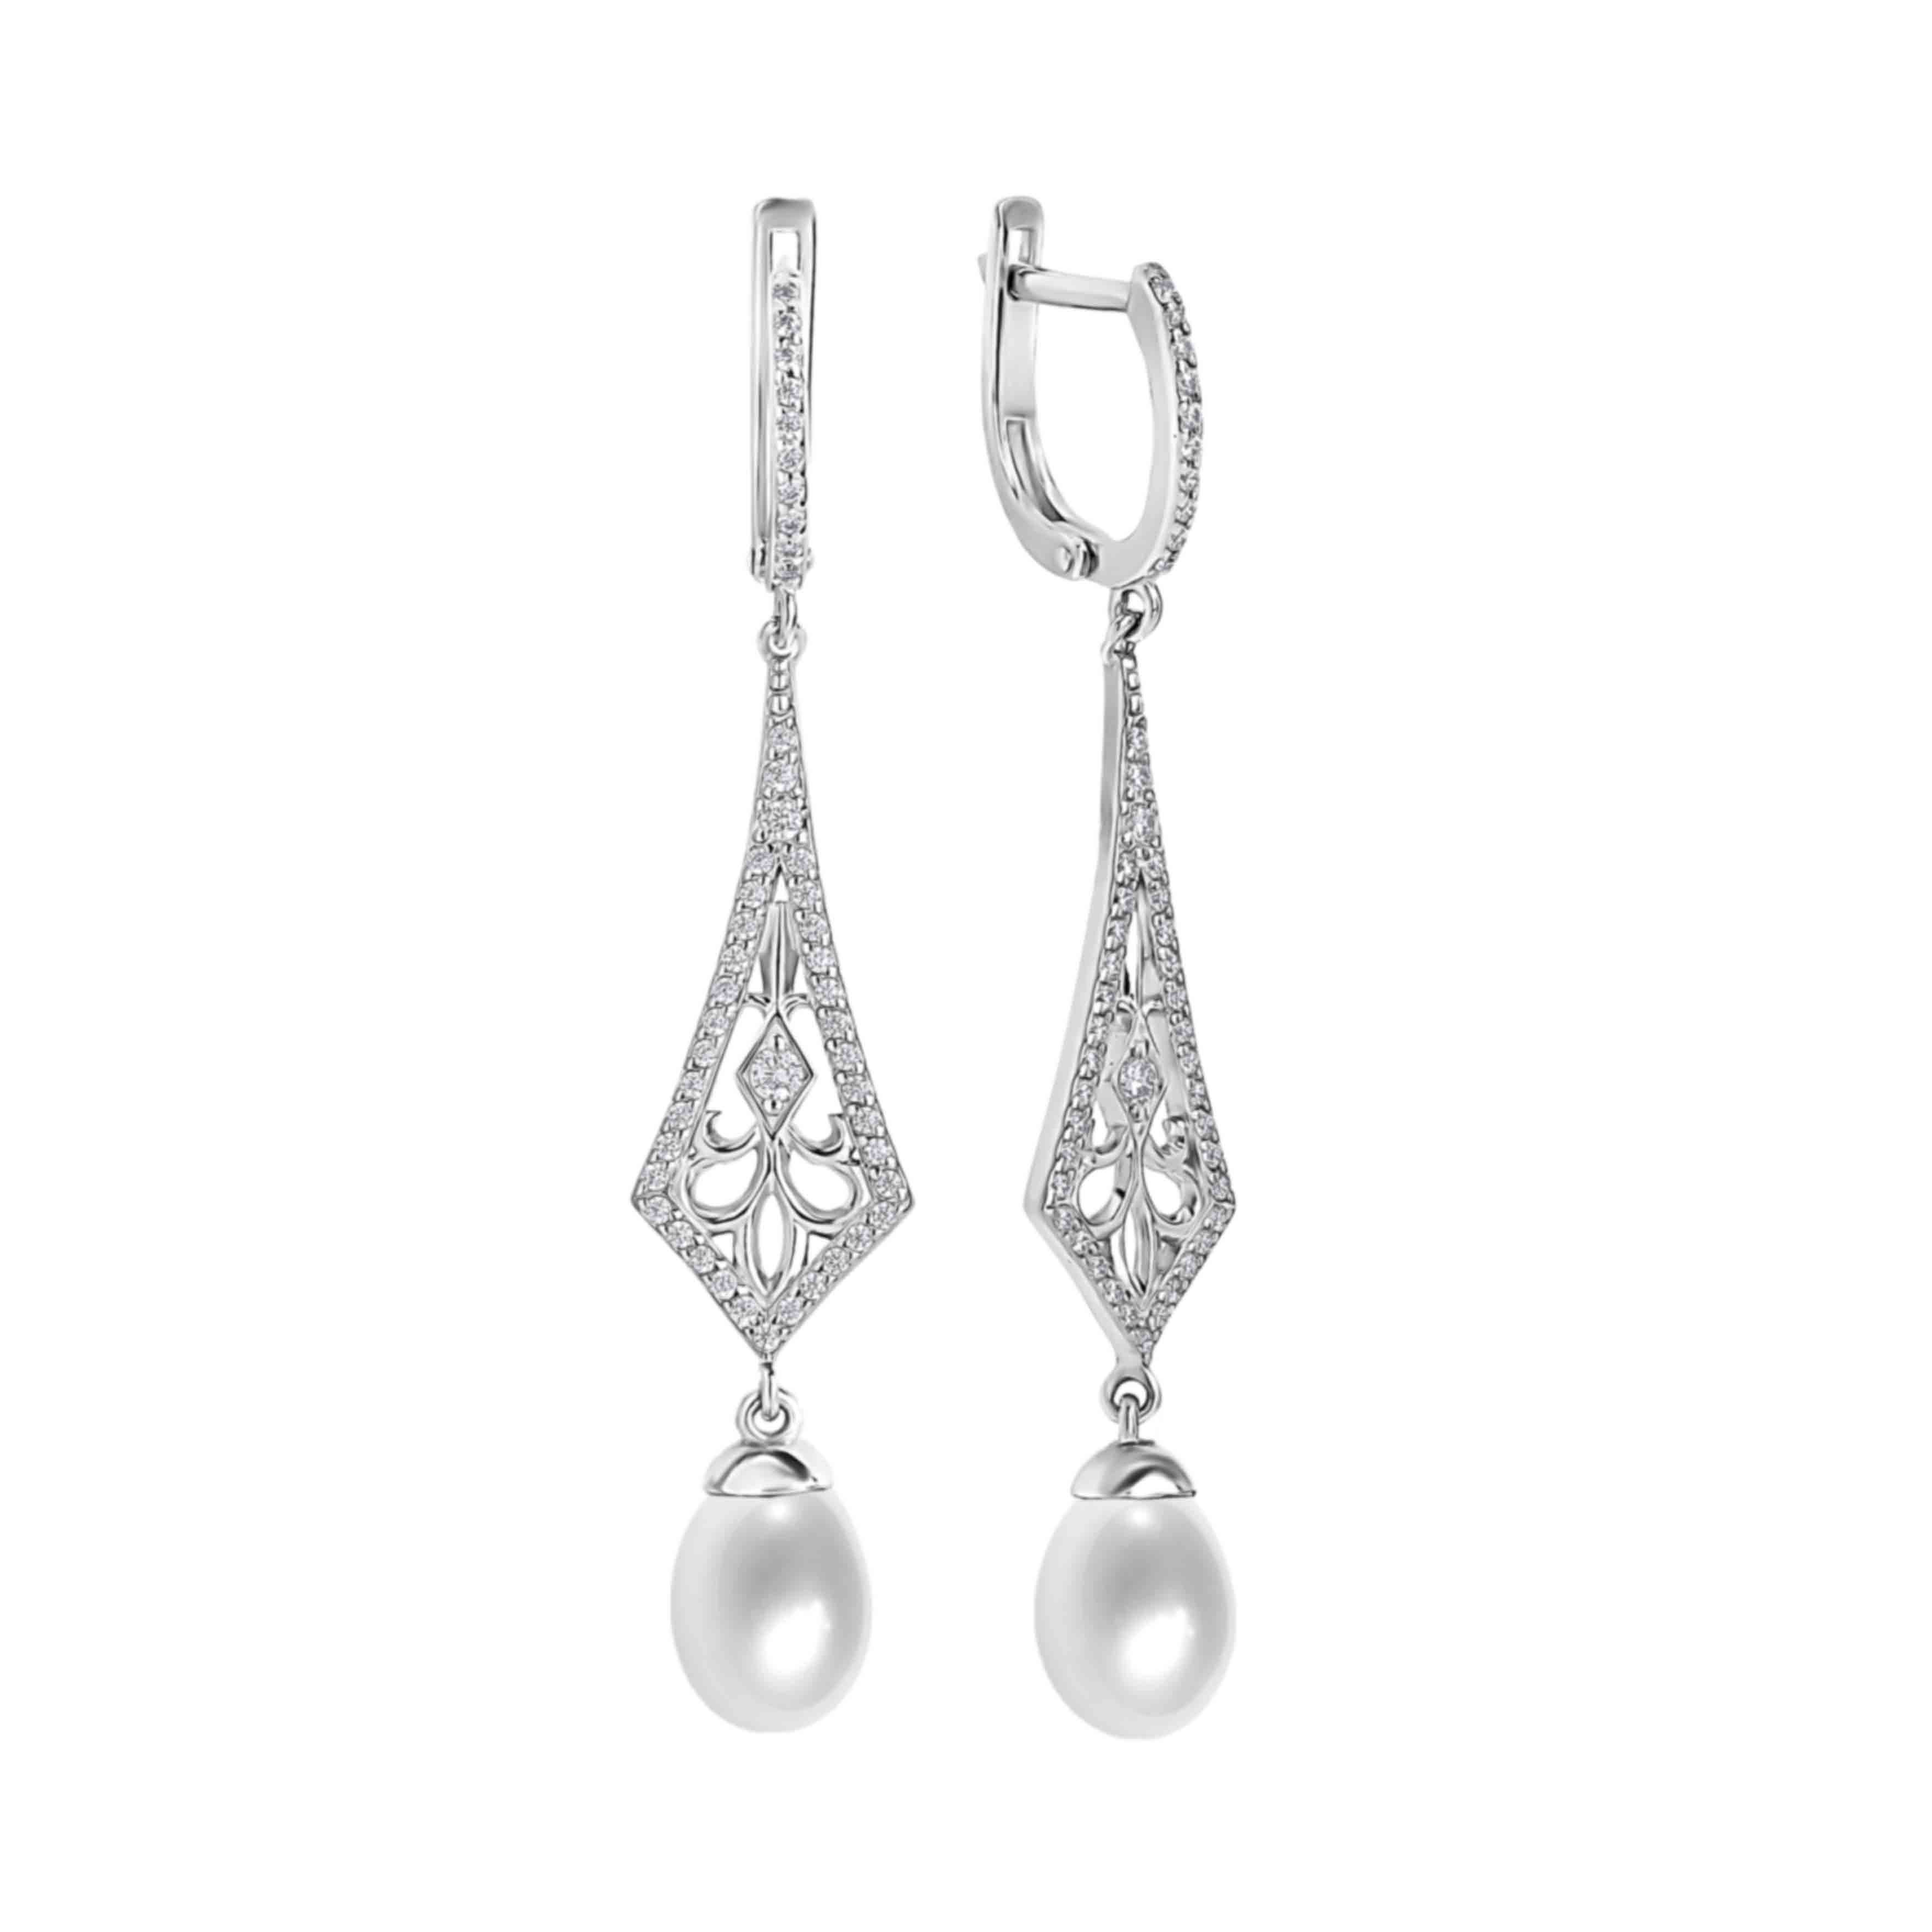 Art Deco-inspired Pearl and CZ Earrings